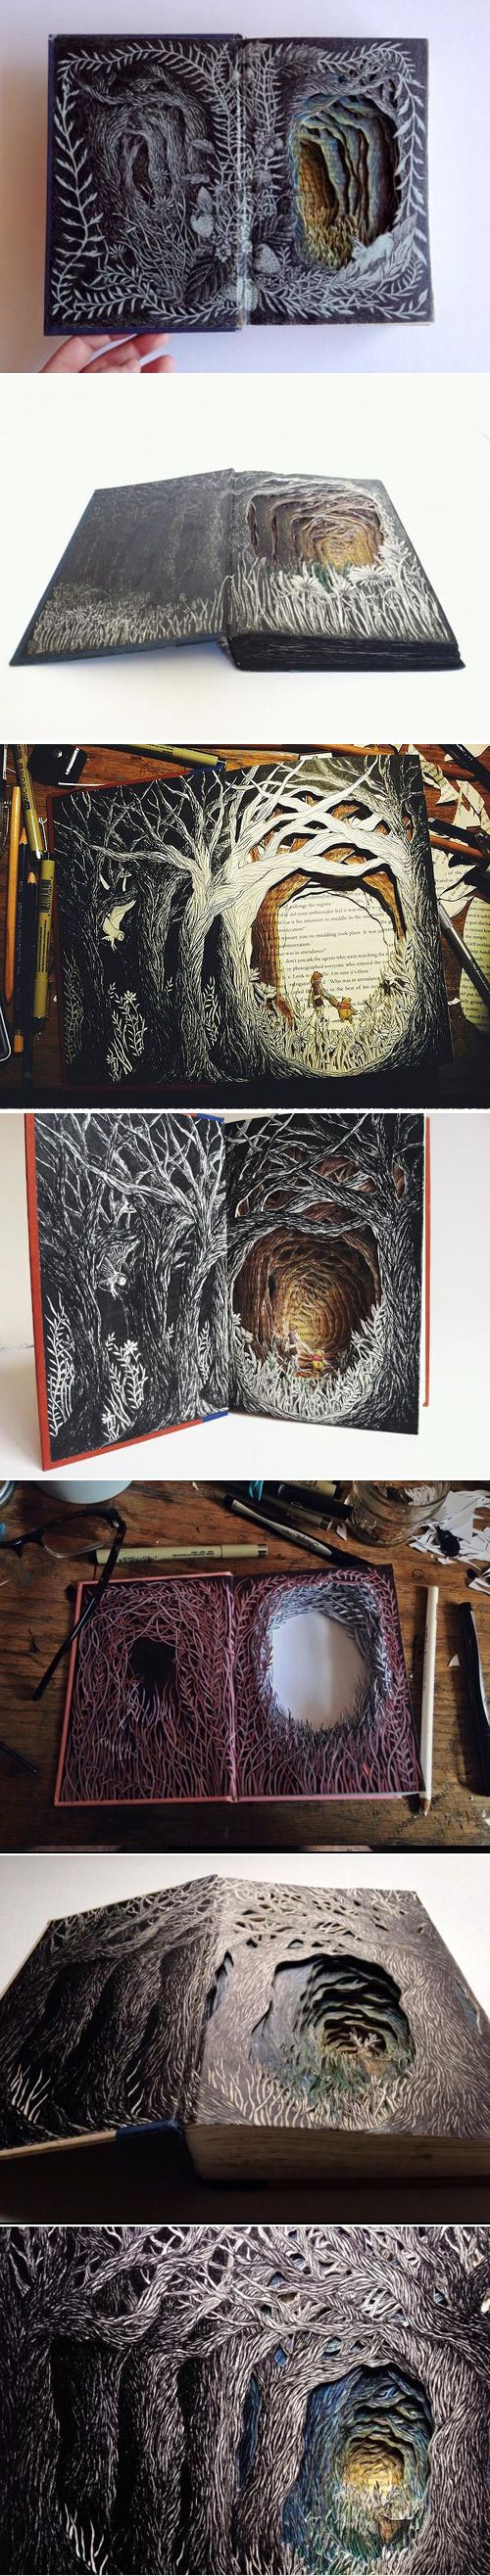 3D Illustrations from Discarded Books by Isobelle Ouzman